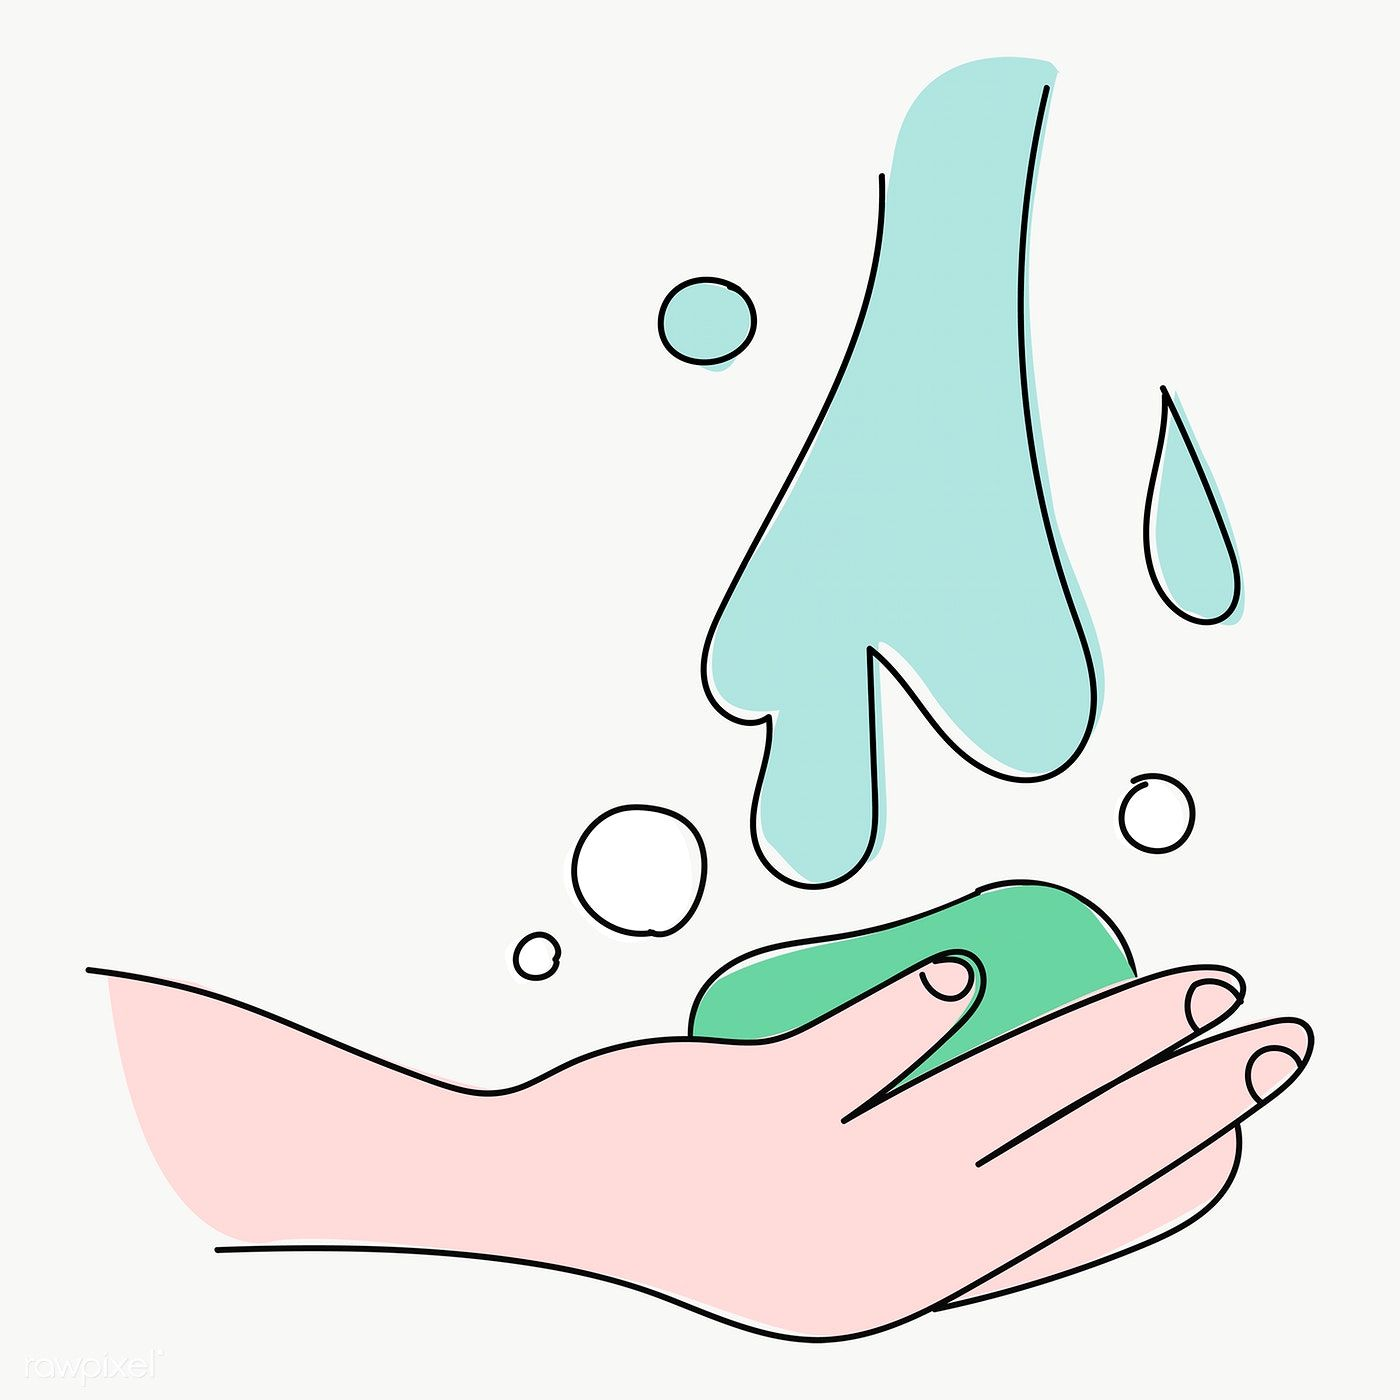 Washing Hands With A Bar Soap Under Running Water Character Transparent Png Free Image By Rawpixel Com Nunny Hand Washing Png Vector Background Pattern